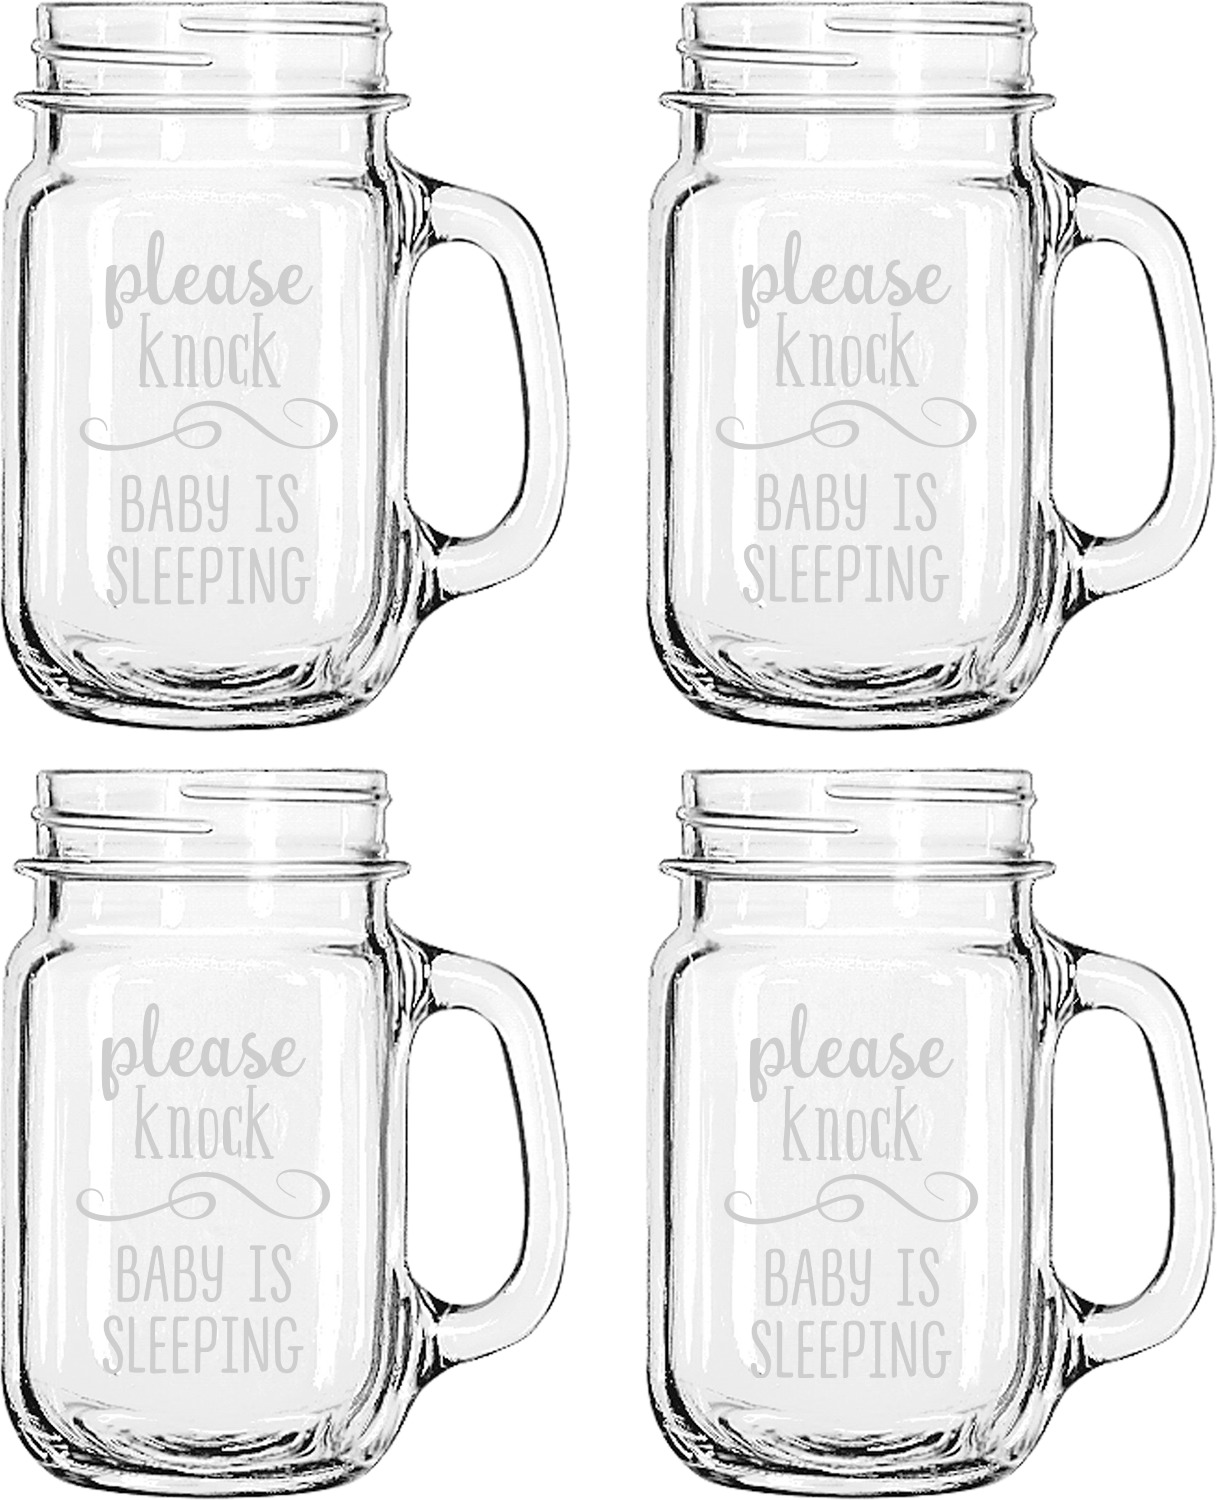 Marvelous Baby Quotes Set Four Personalized Mason Jar Mugs Baby Quotes Mason Jar Mugs Youcustomizeit Personalized Mason Jars Canada Personalized Mason Jars Baby Shower inspiration Personalized Mason Jars